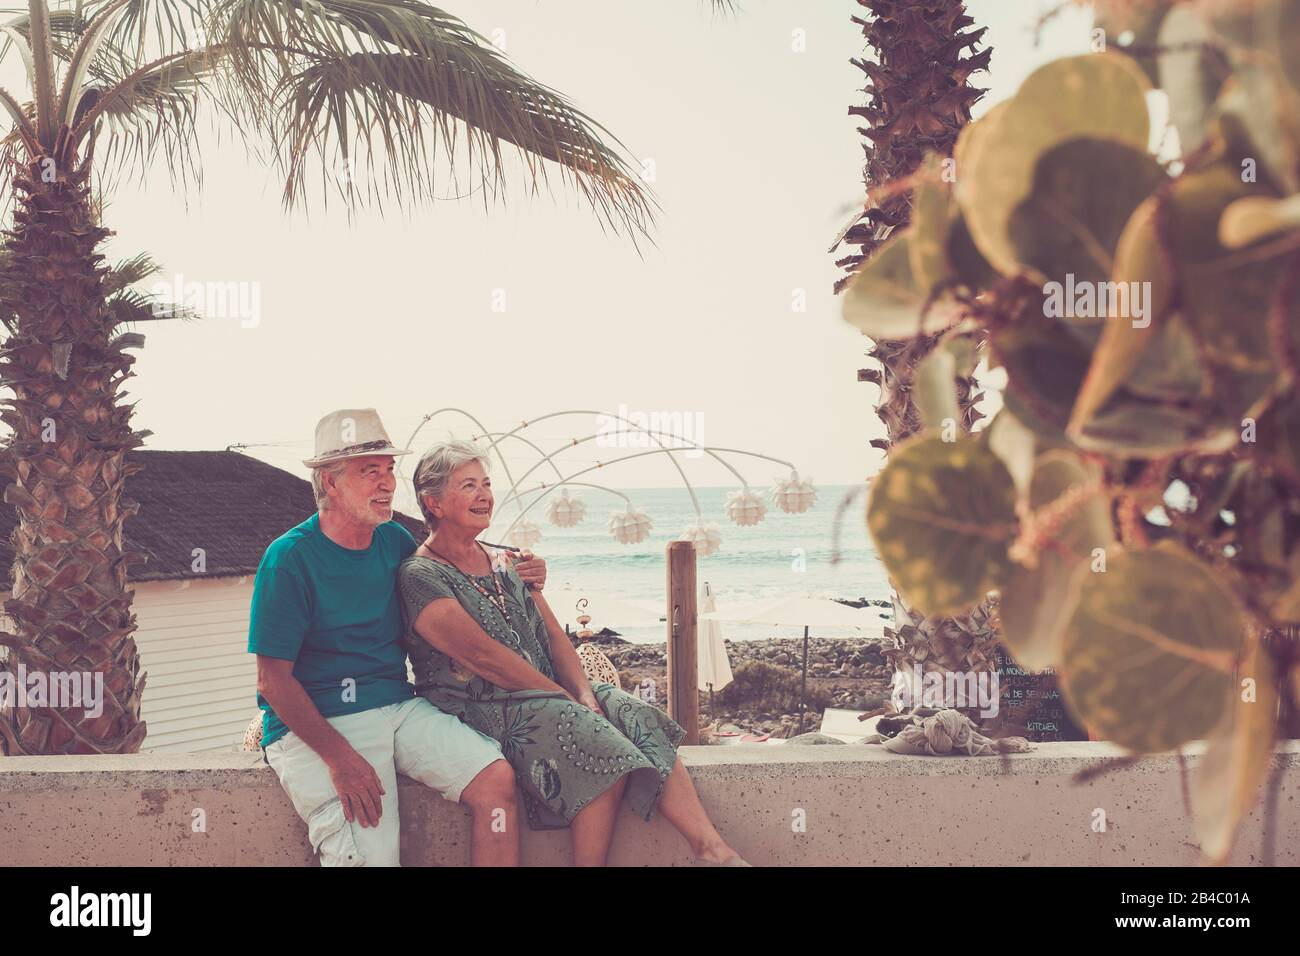 Happy senior adult caucasian people couple sitting and enojying outdoor leisure activity together hugged - forever life concept - vacation sea in background Stock Photo